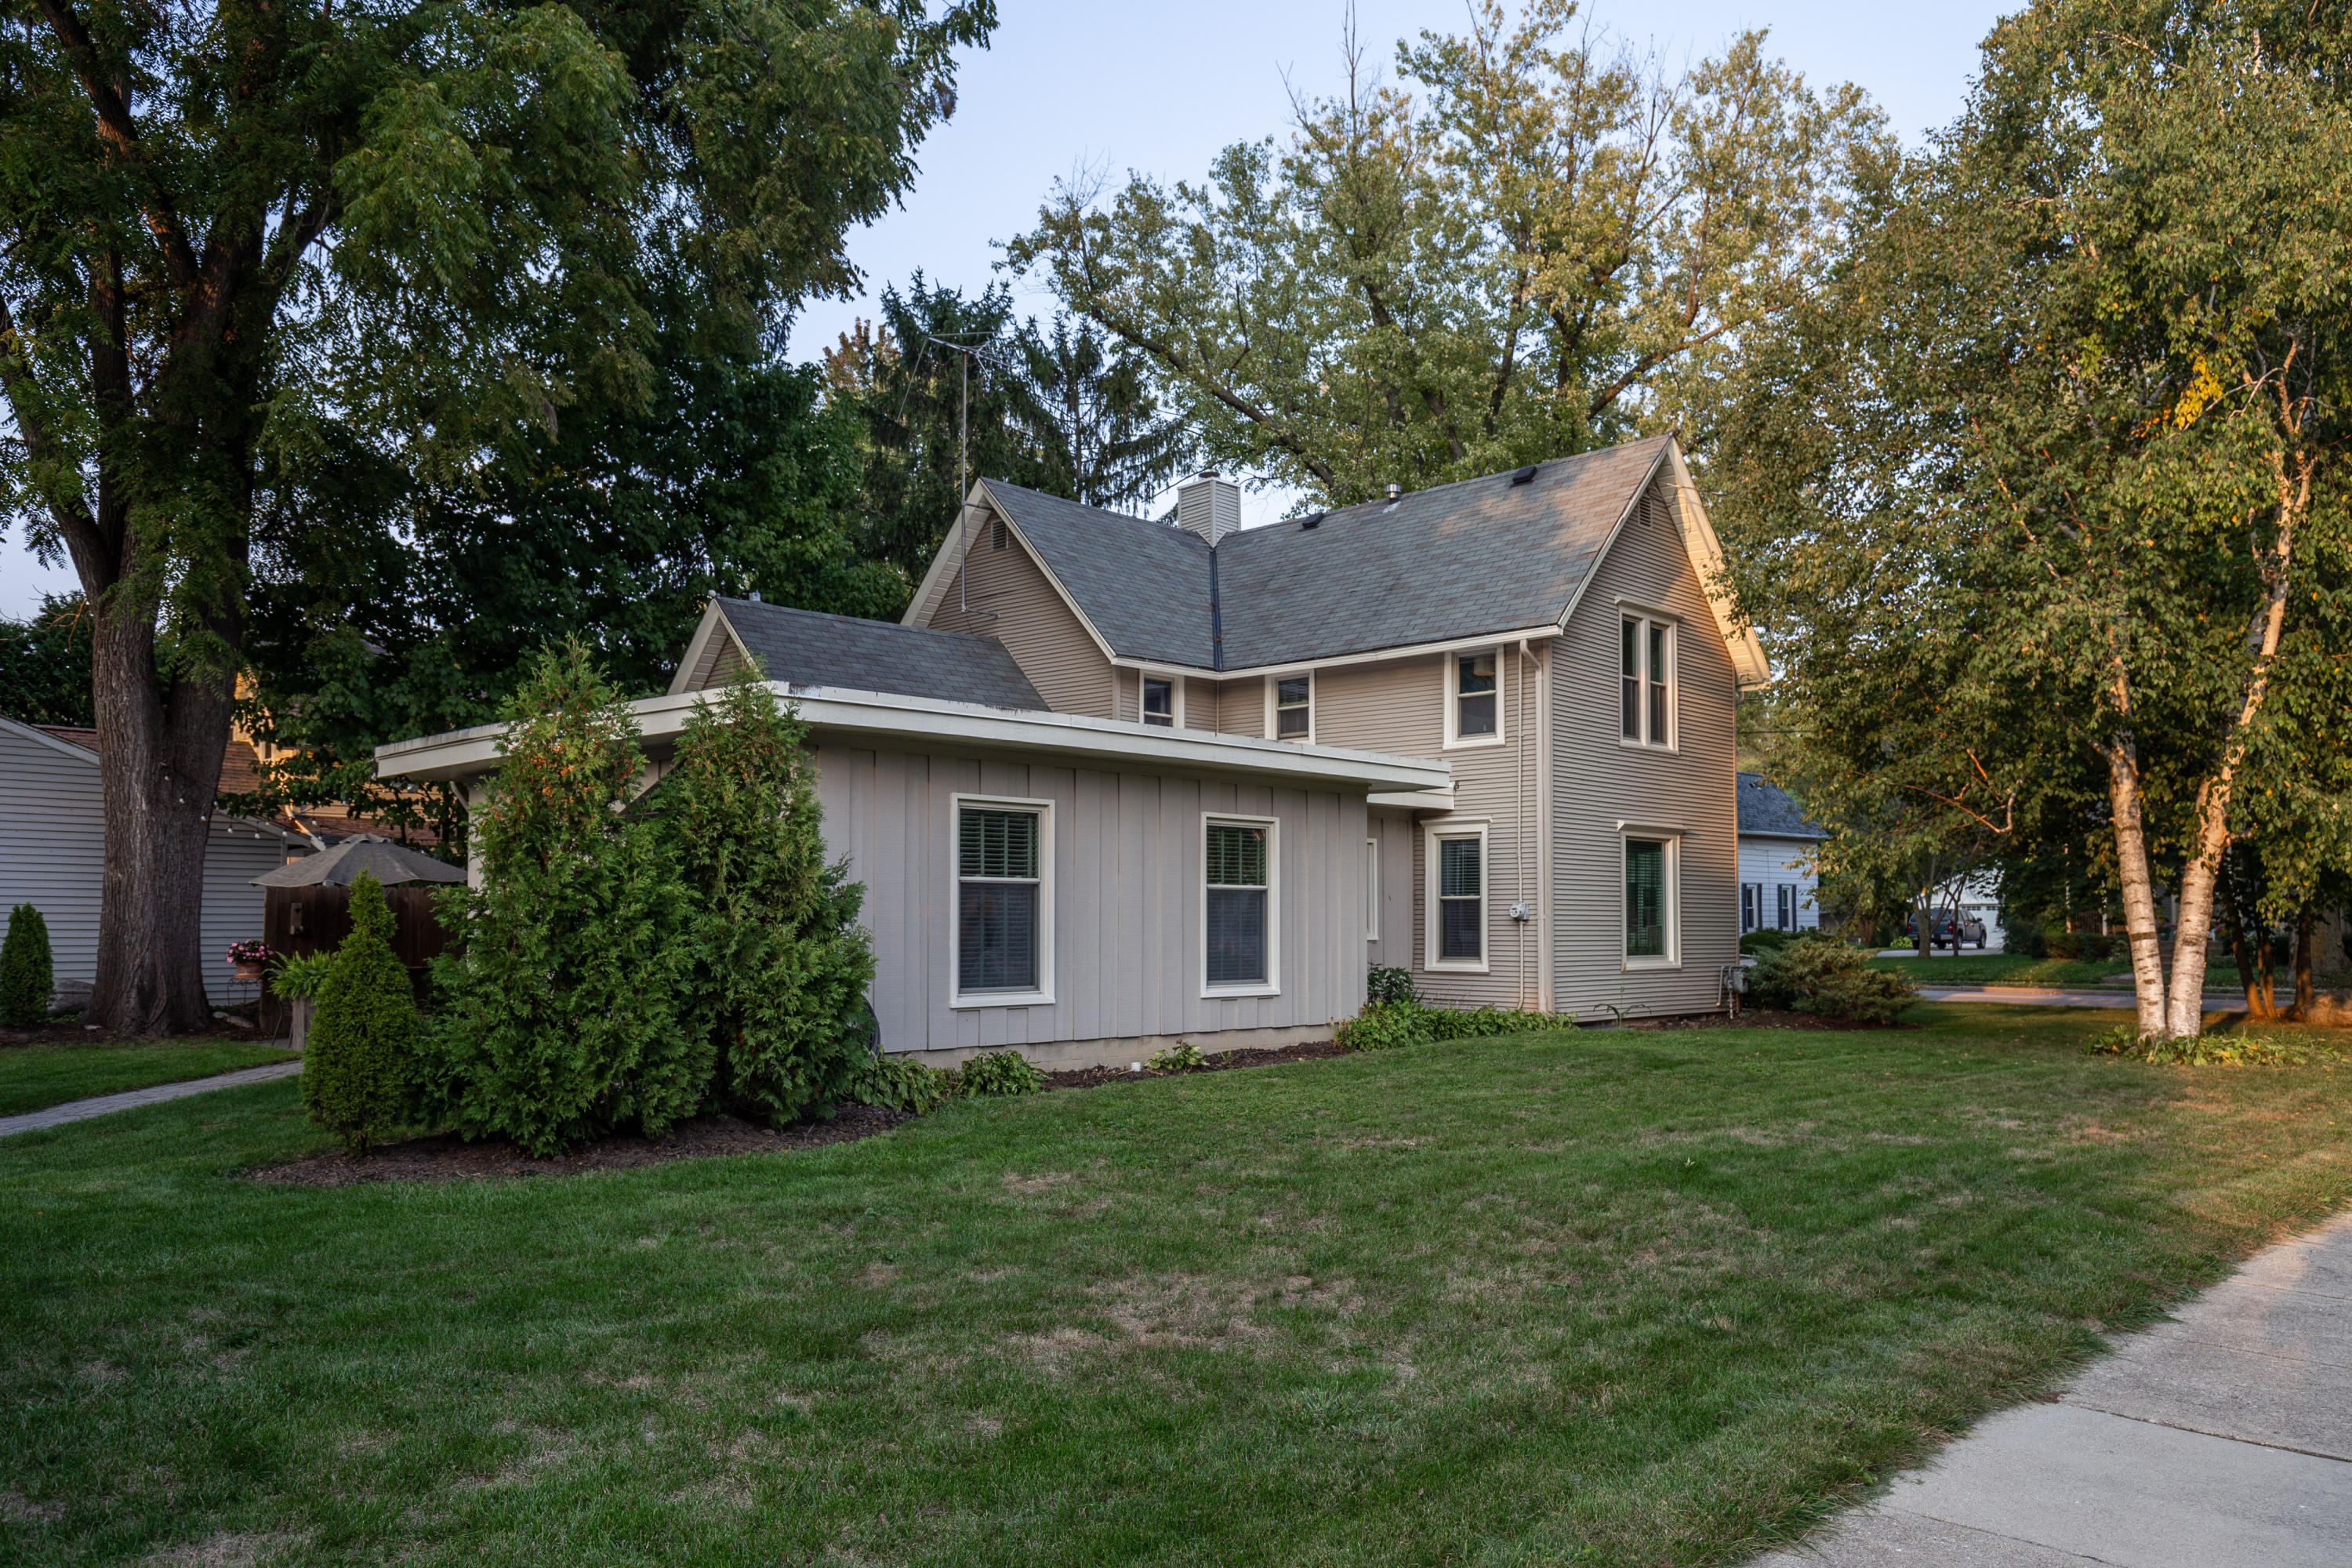 143 Maple Ave, Hartland, Wisconsin 53029, 3 Bedrooms Bedrooms, 9 Rooms Rooms,2 BathroomsBathrooms,Single-Family,For Sale,Maple Ave,1714091